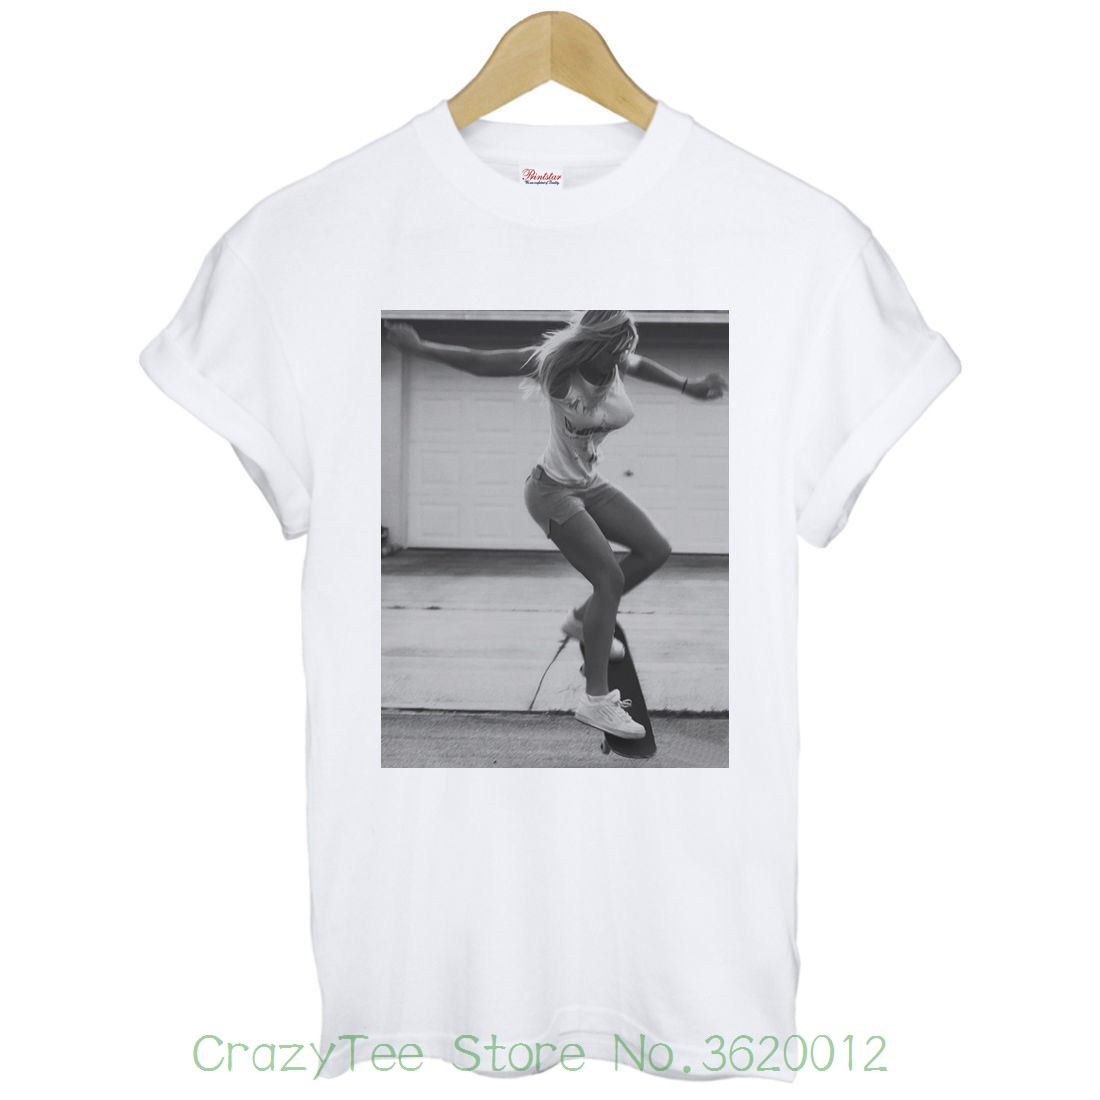 Vintage BMX Casual Loose Short Sleeve Tops Tee Shirts for Boys Girls